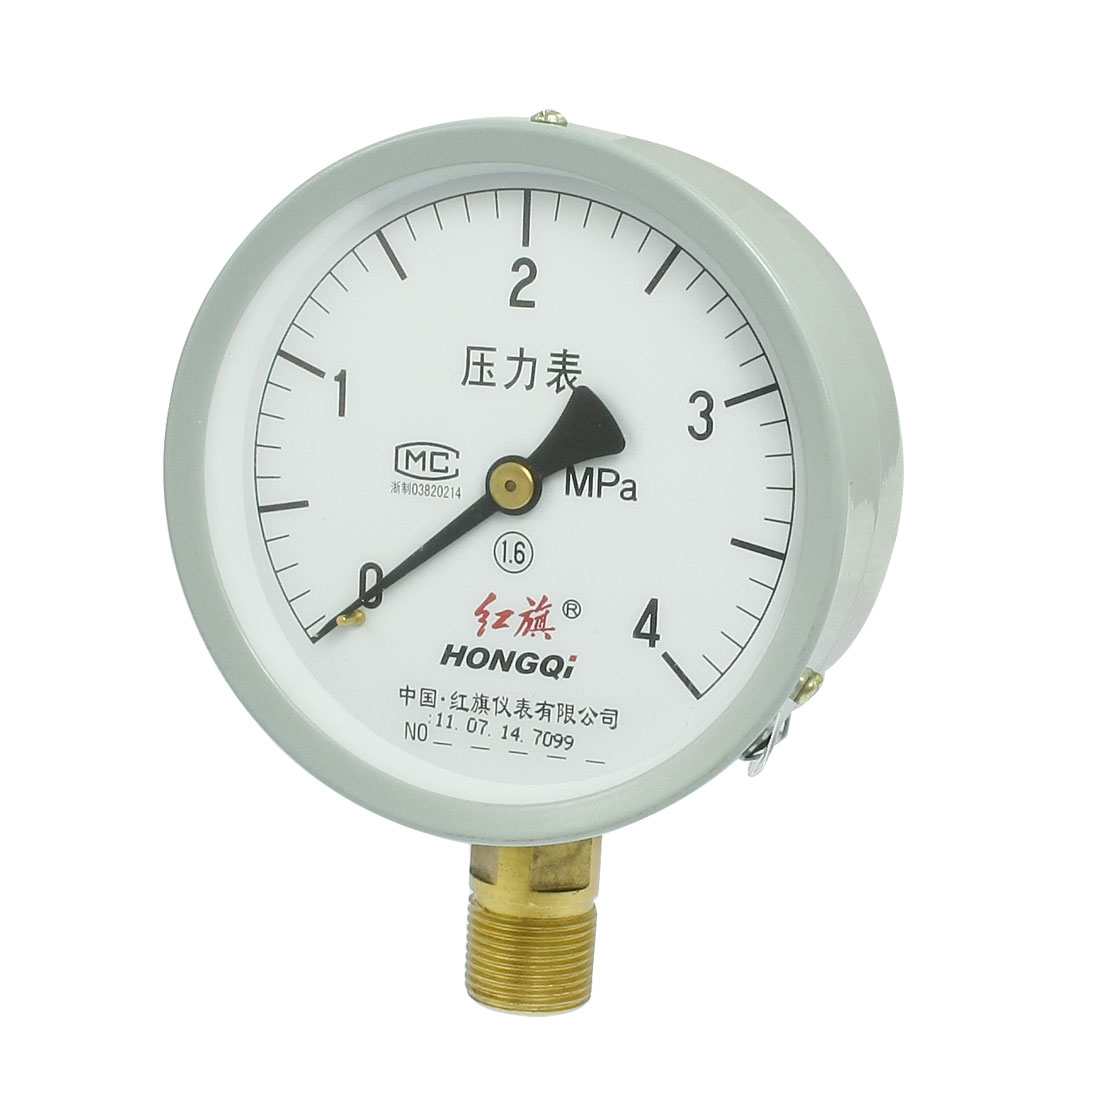 "1/2"" NPT Thread 0-4MPa Round Face Water Air Pressure Gauge"